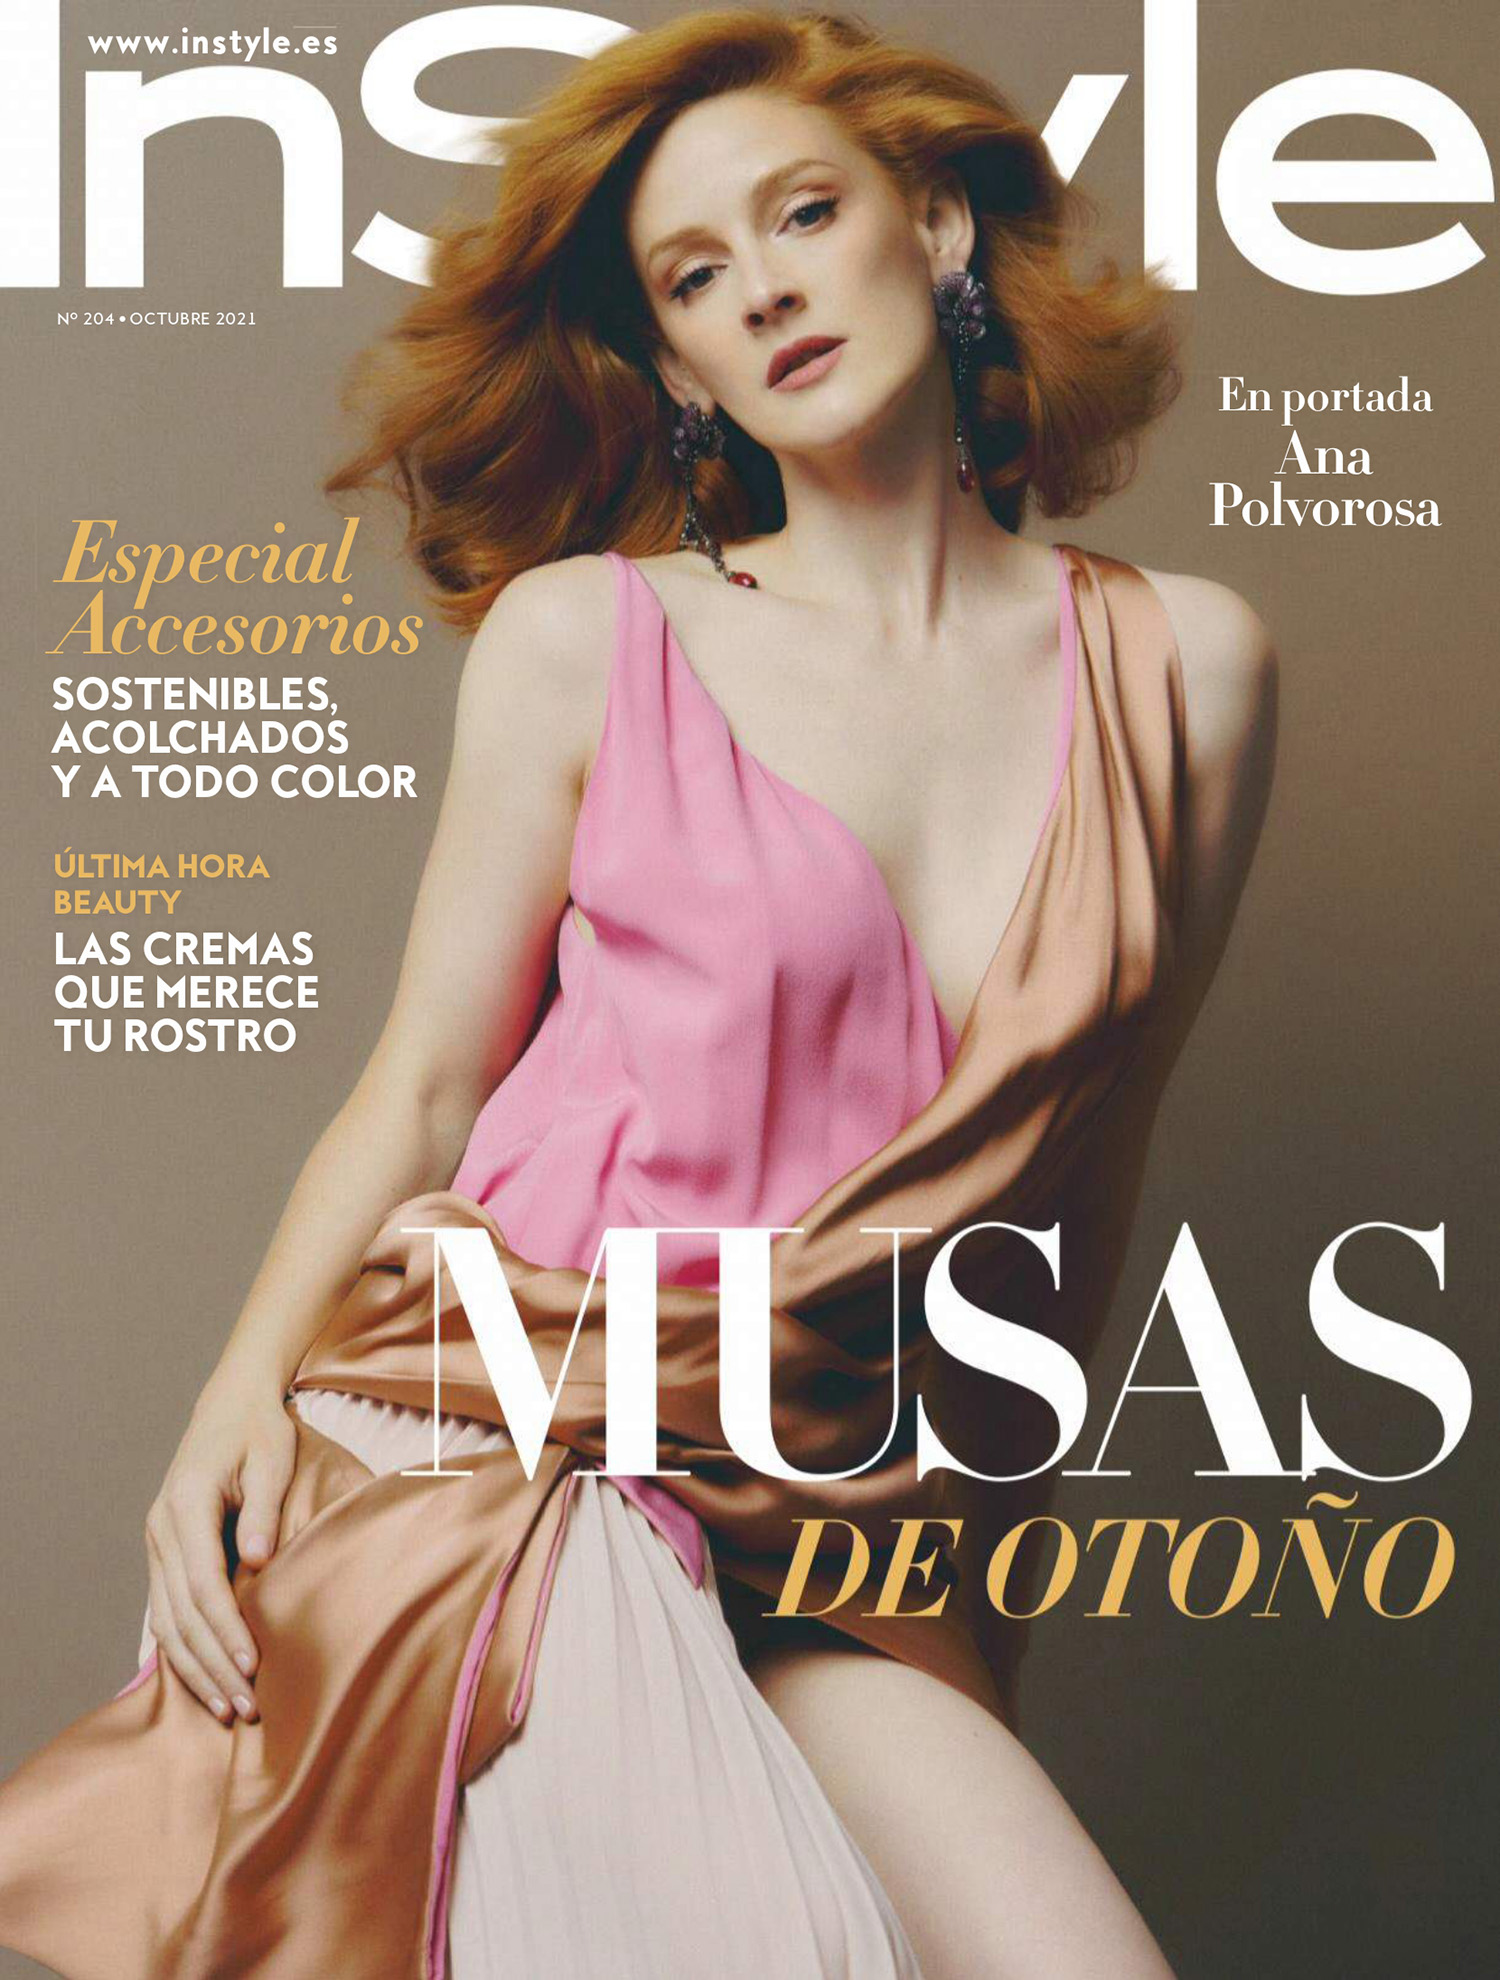 Ana Polvorosa covers InStyle Spain October 2021 by Javier Biosca